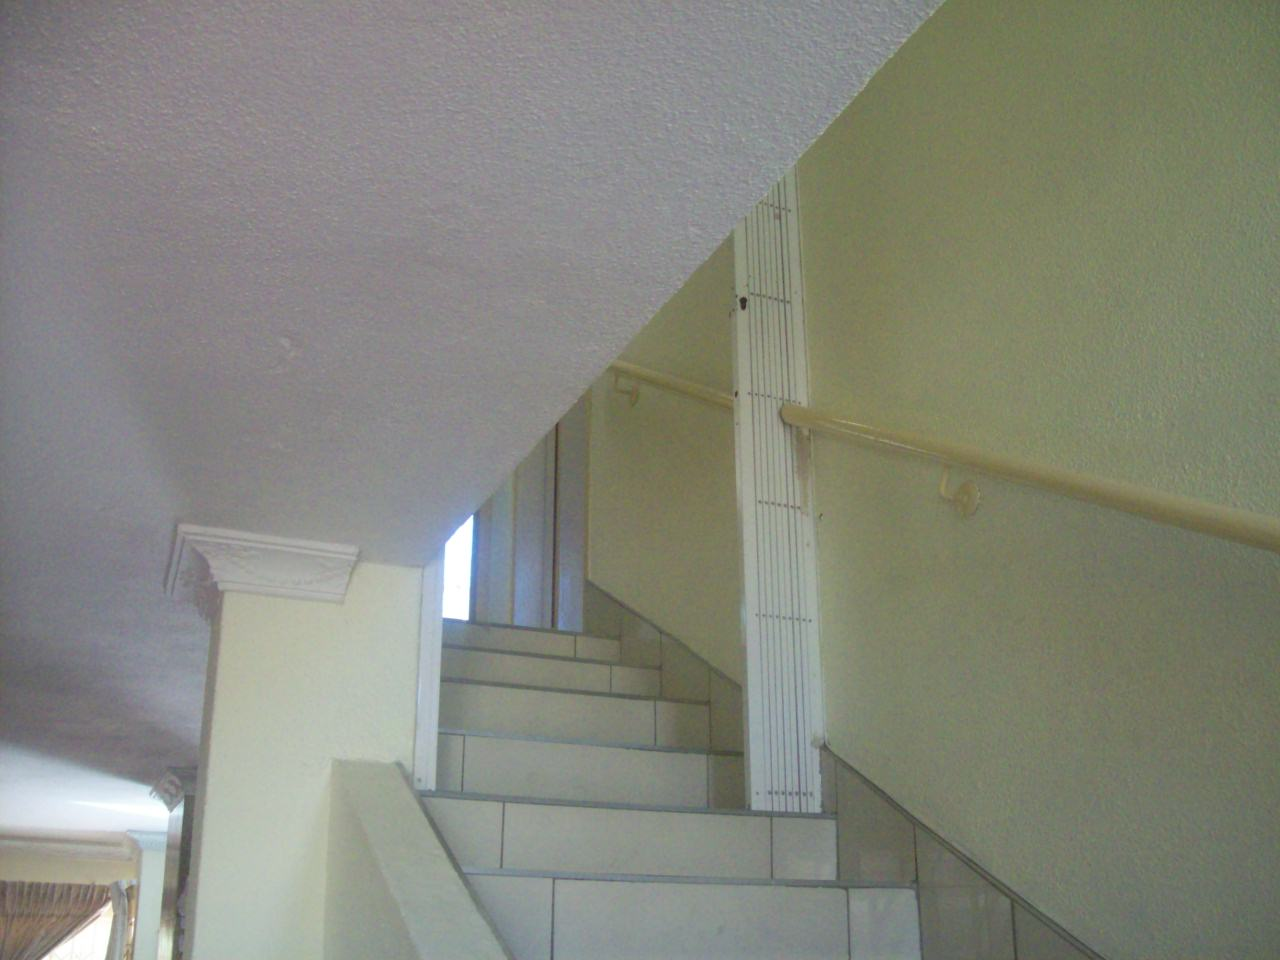 3 Bedroom Townhouse for sale in Bassonia ENT0071278 : photo#28